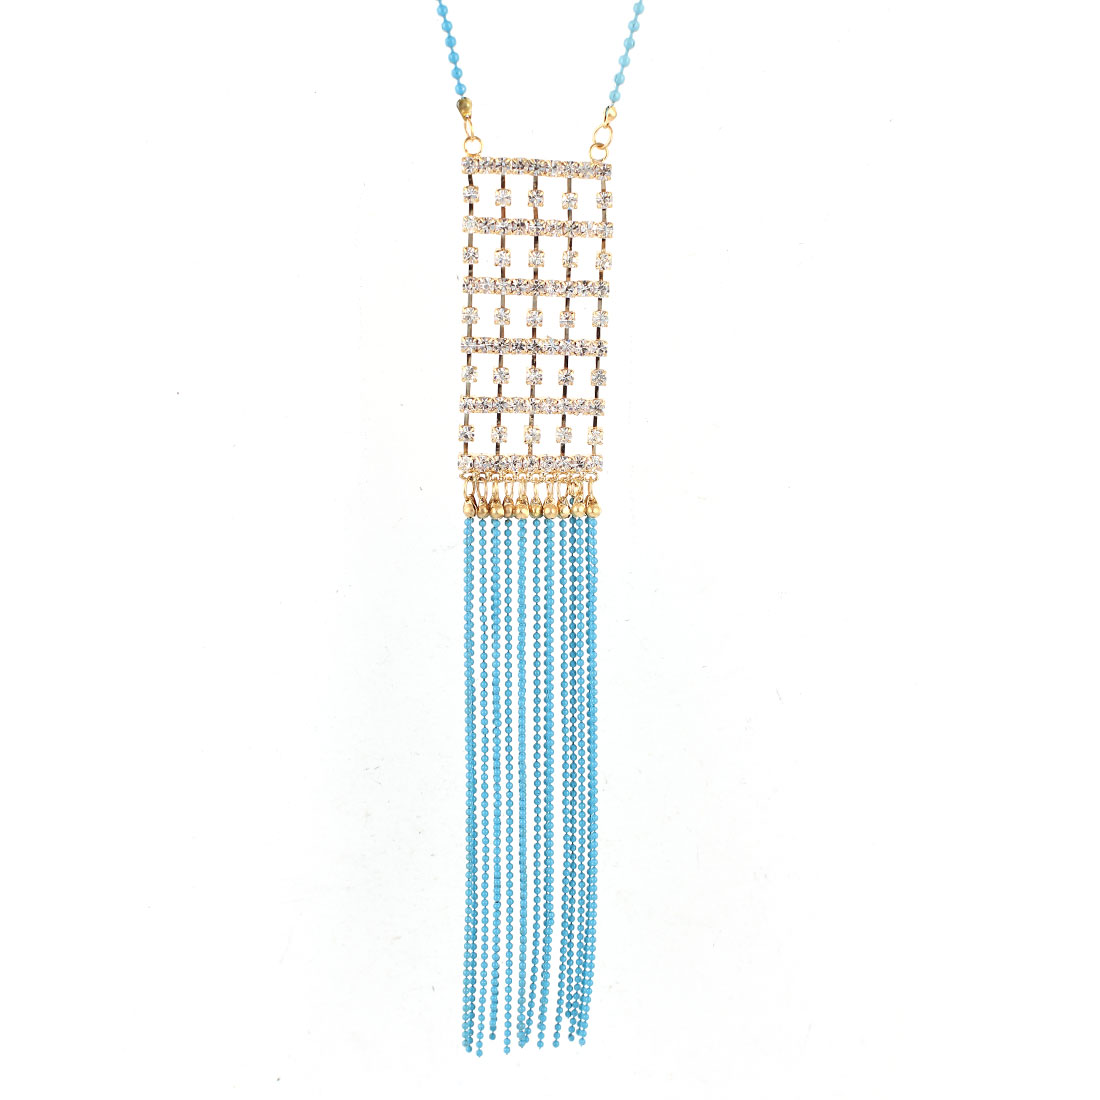 Blue Beads String Tassels Gold Tone Rhinestone Detailing Pendant Dress Sweater Necklace for Lady